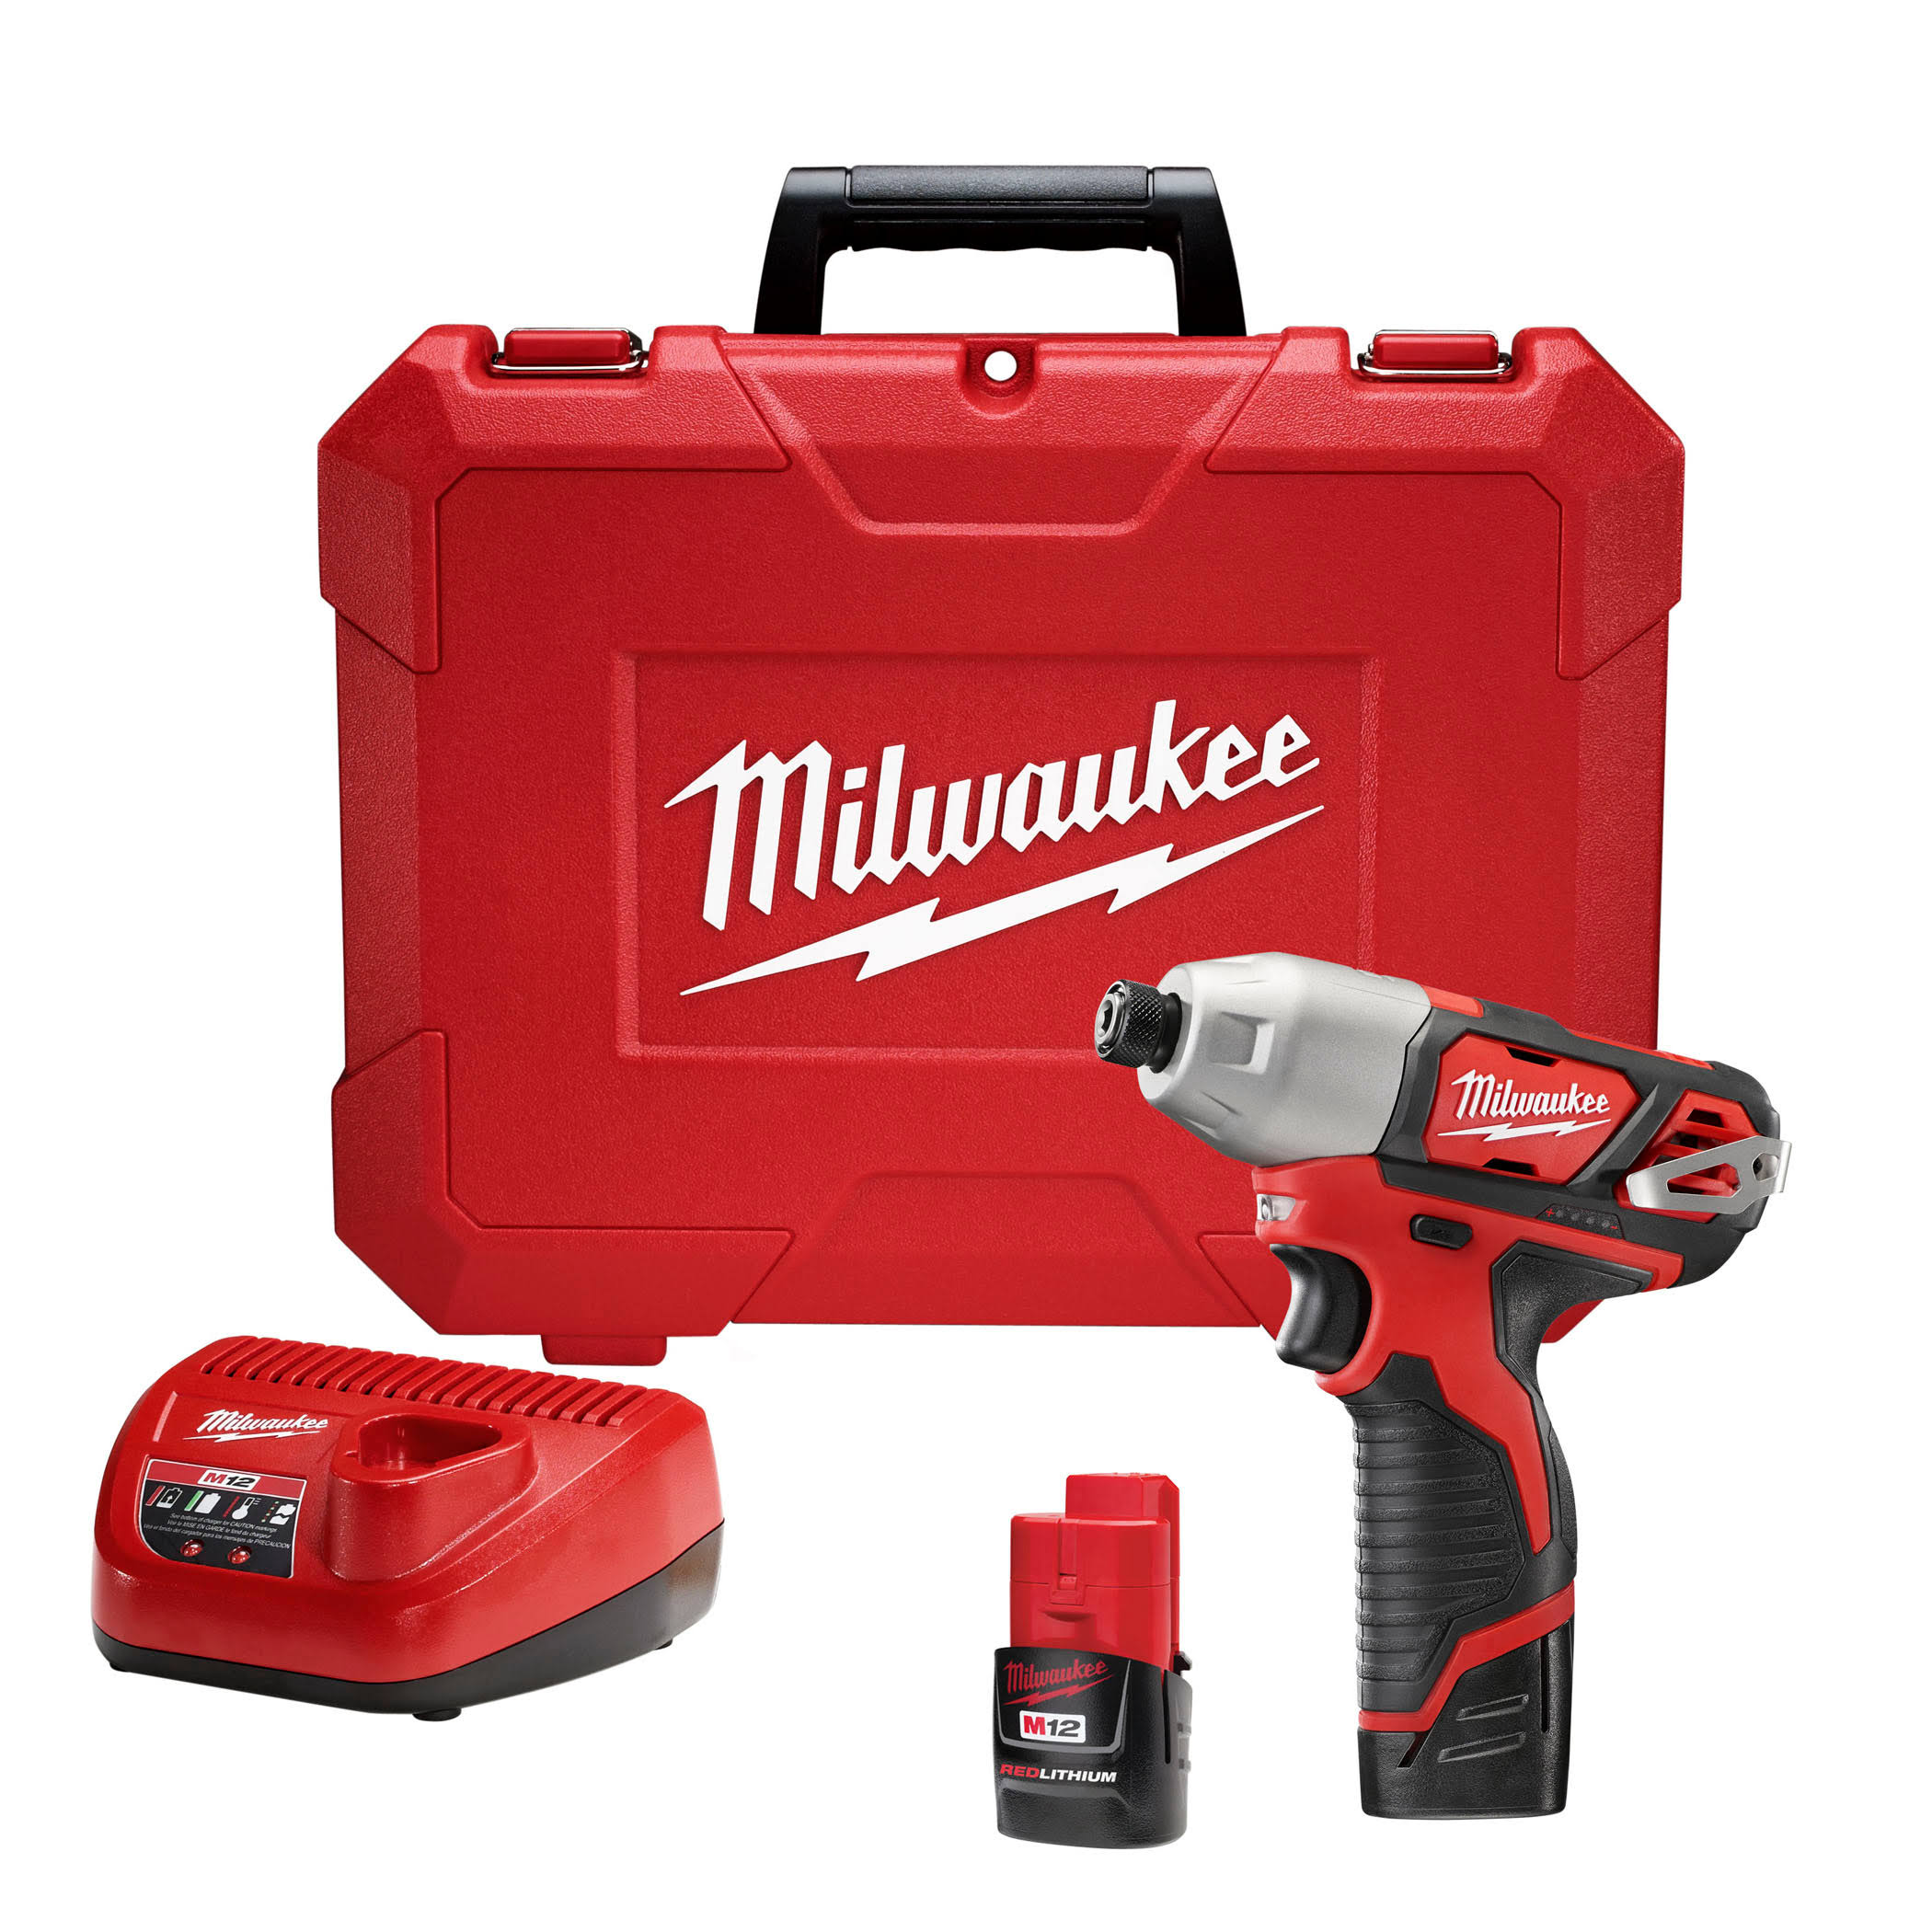 Milwaukee M12 Series Hex Impact Driver Kit